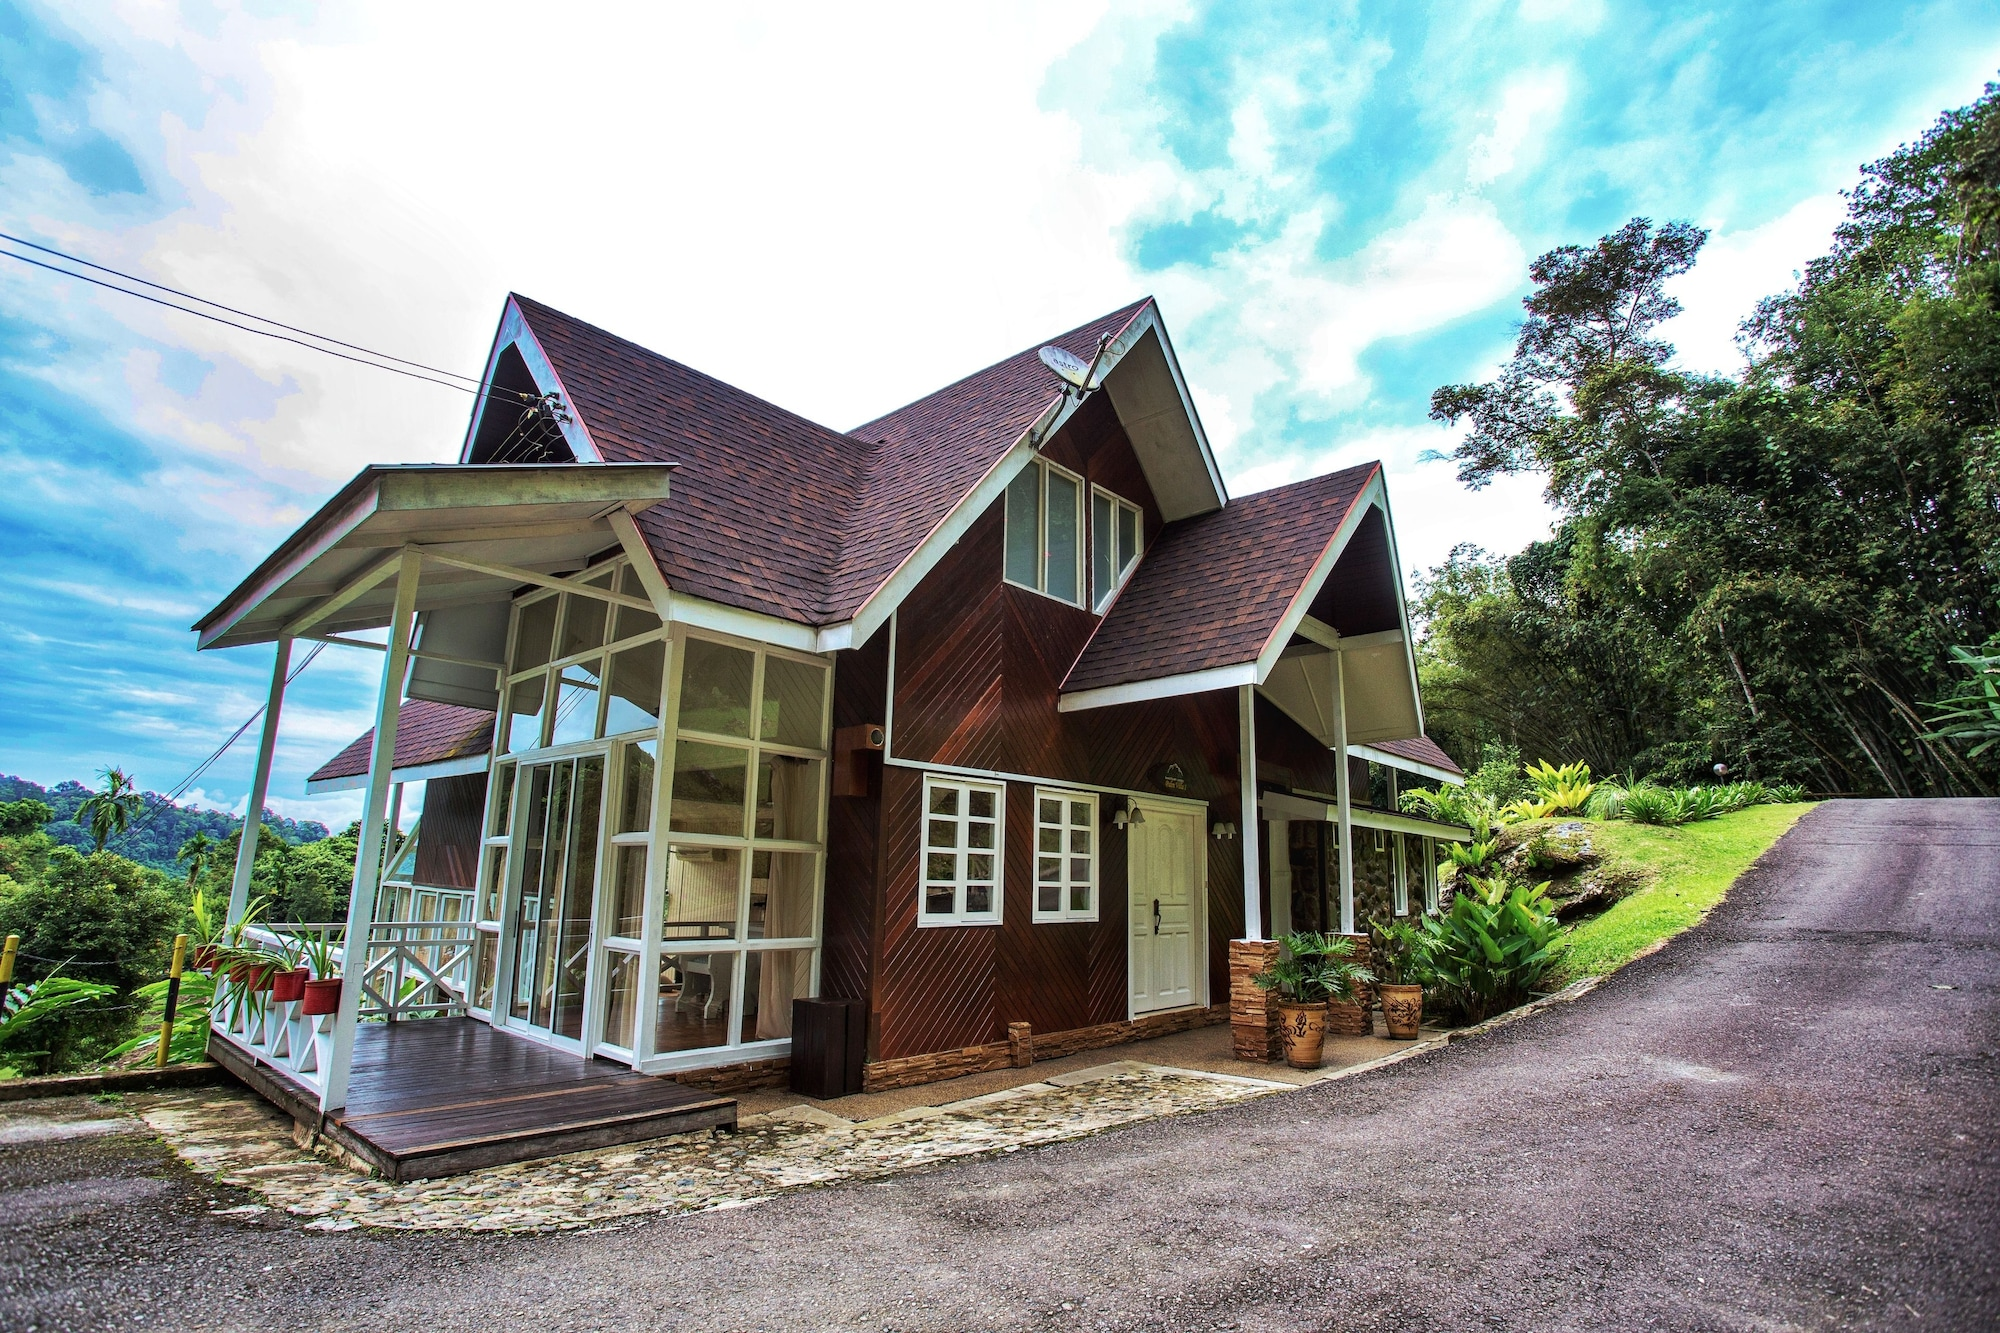 Sutera Sanctuary Lodges at Poring Hot Springs, Ranau